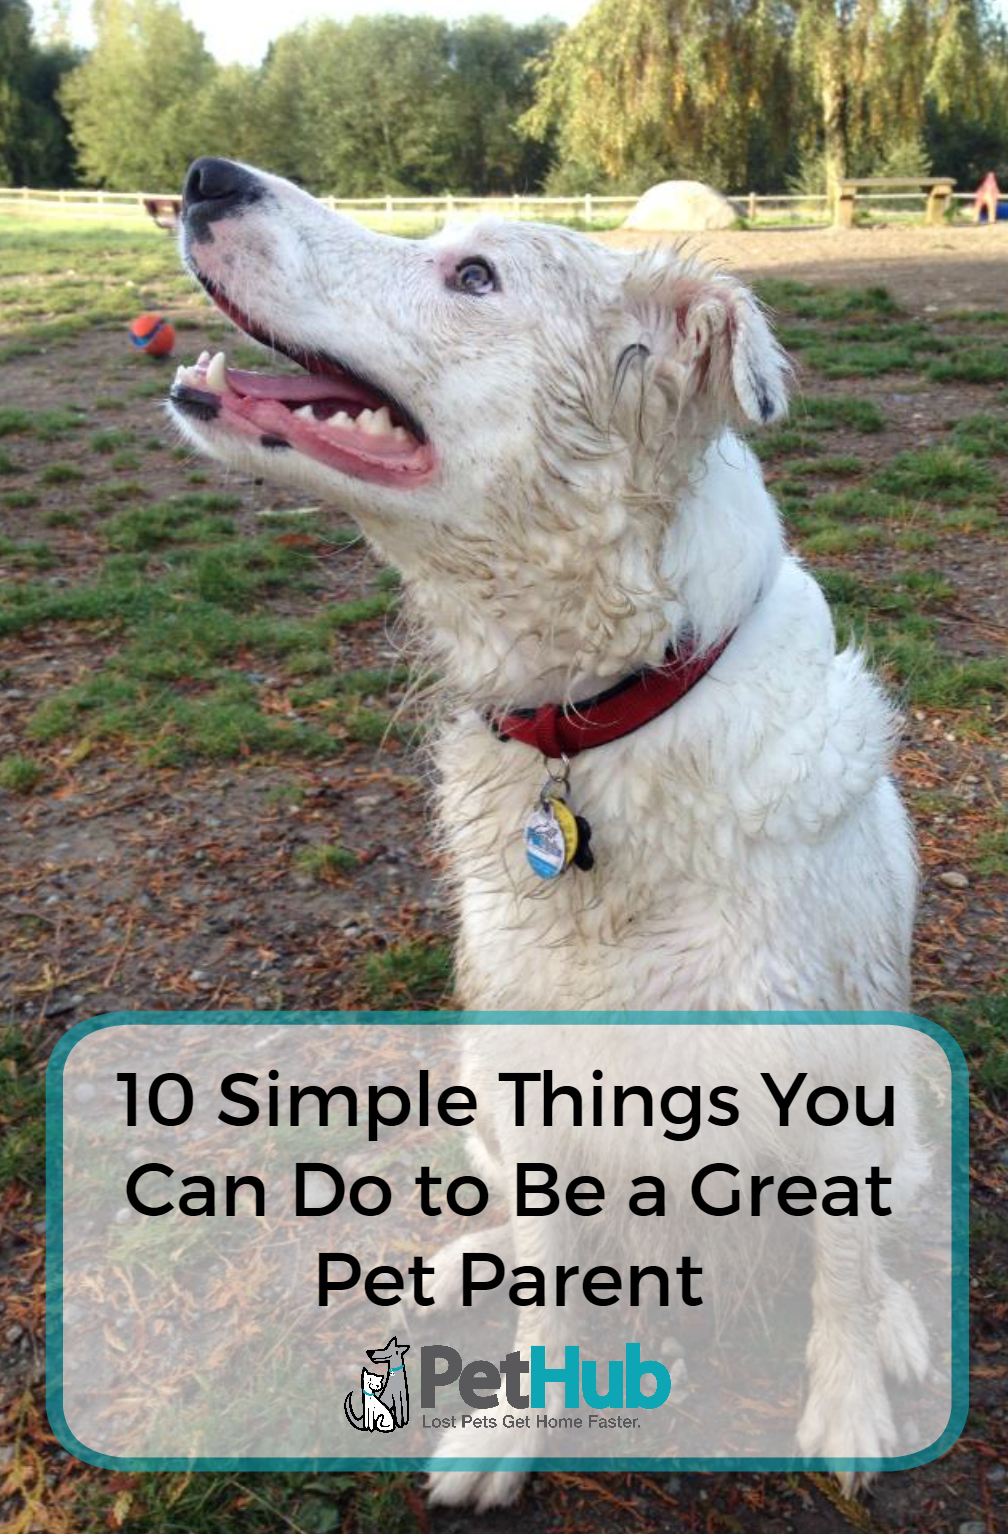 Simple Things You Can Do to Be a Great Pet Parent